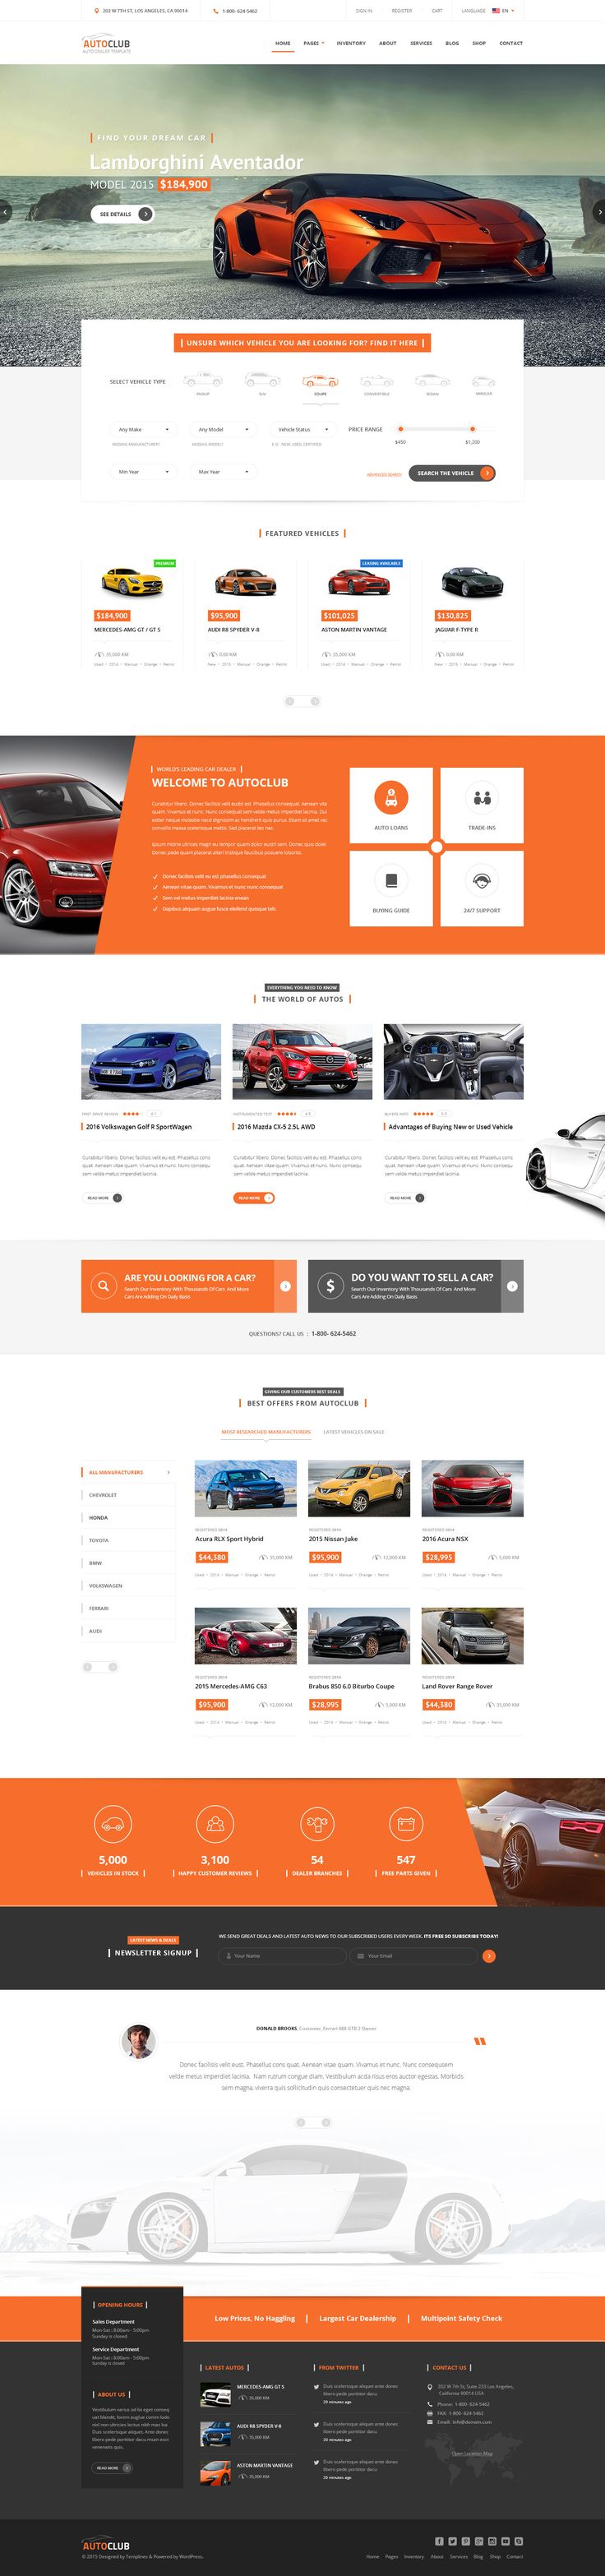 17 Best images about car website on Pinterest